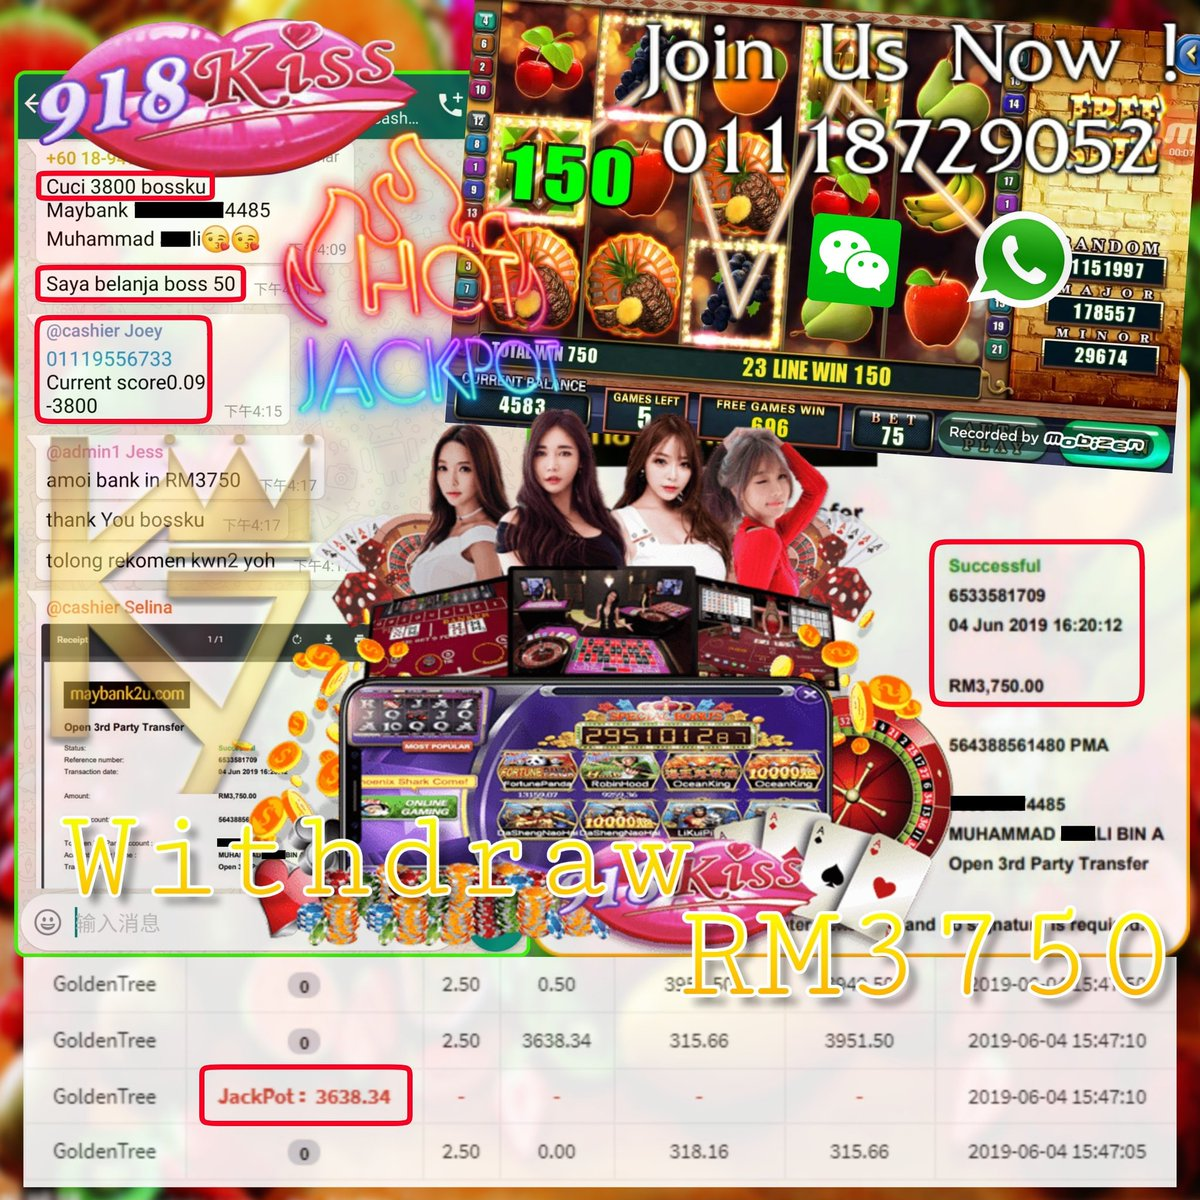 918kiss💋💋 Big JackPot Get Withdraw RM3750 👏👏 Join us now